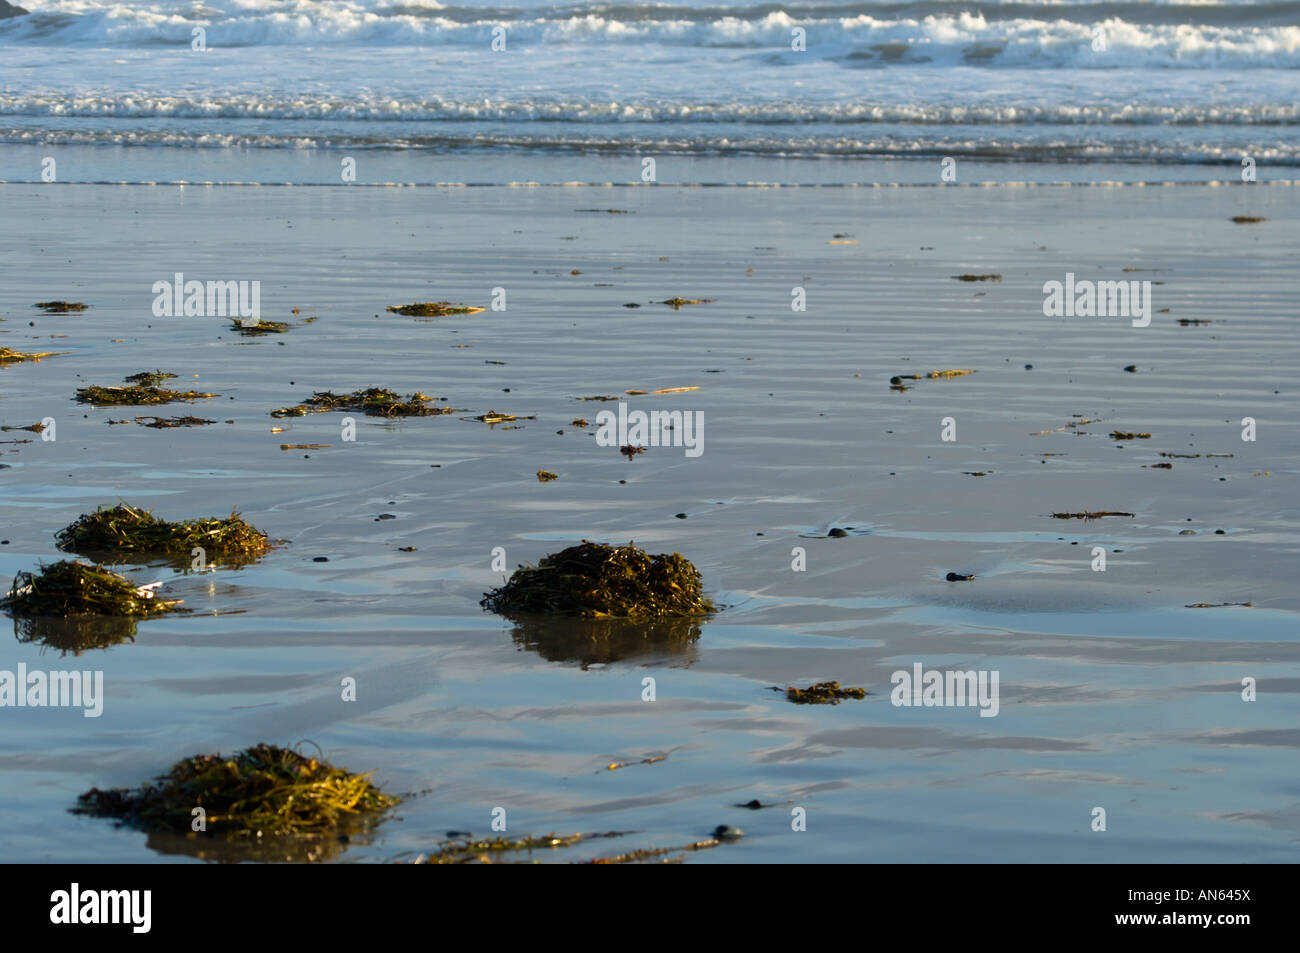 Seaweed on the smooth shiny shore at low tide Martinique beach Nova